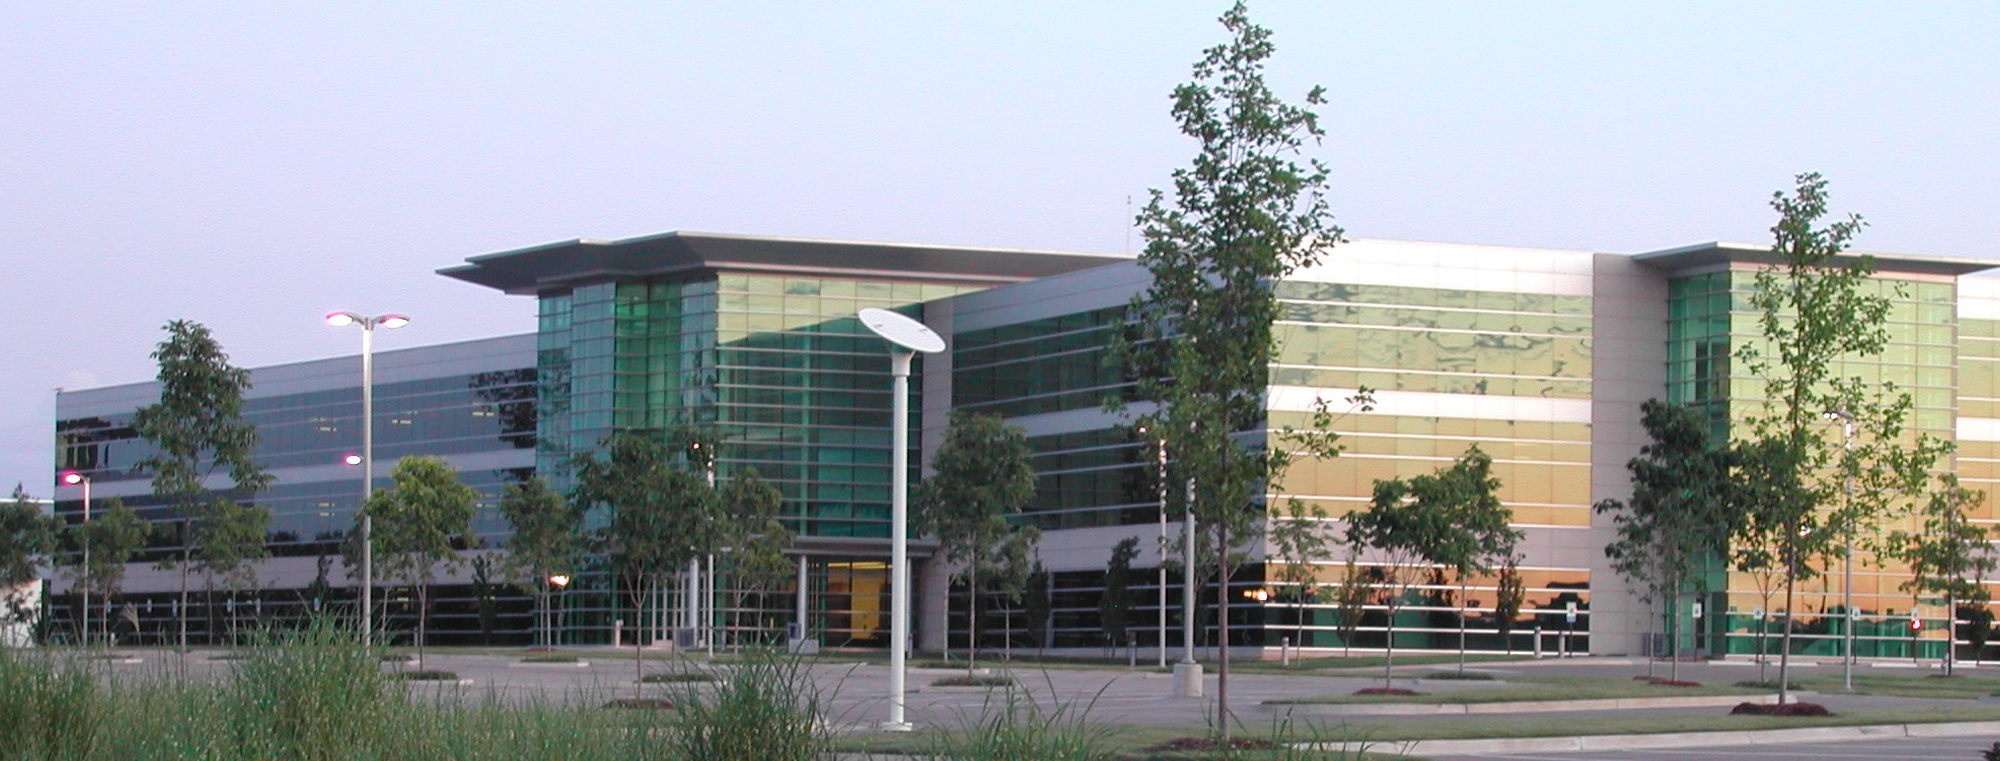 Fedex World Headquarters